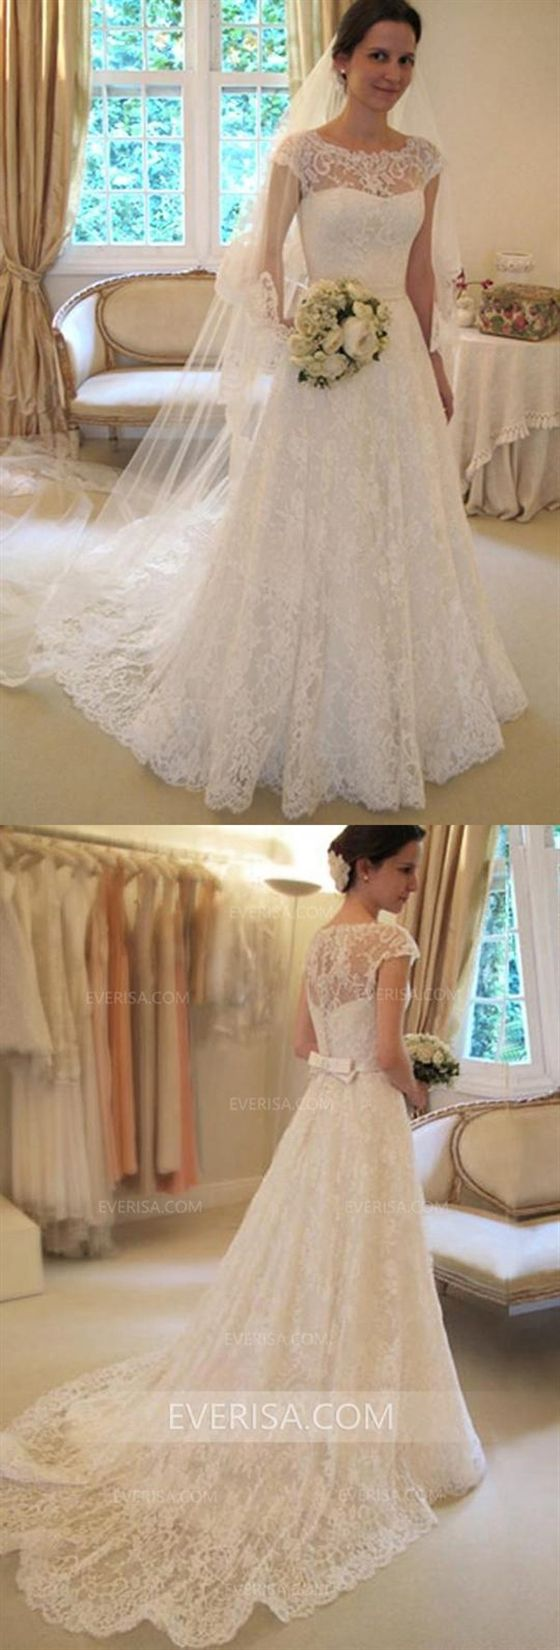 dacd67372d9d Elegant White A-Line Cap Sleeves Lace Wedding Dresses Cheap Bridal Gown  With Bowknot #wedding #white #lace #dresses